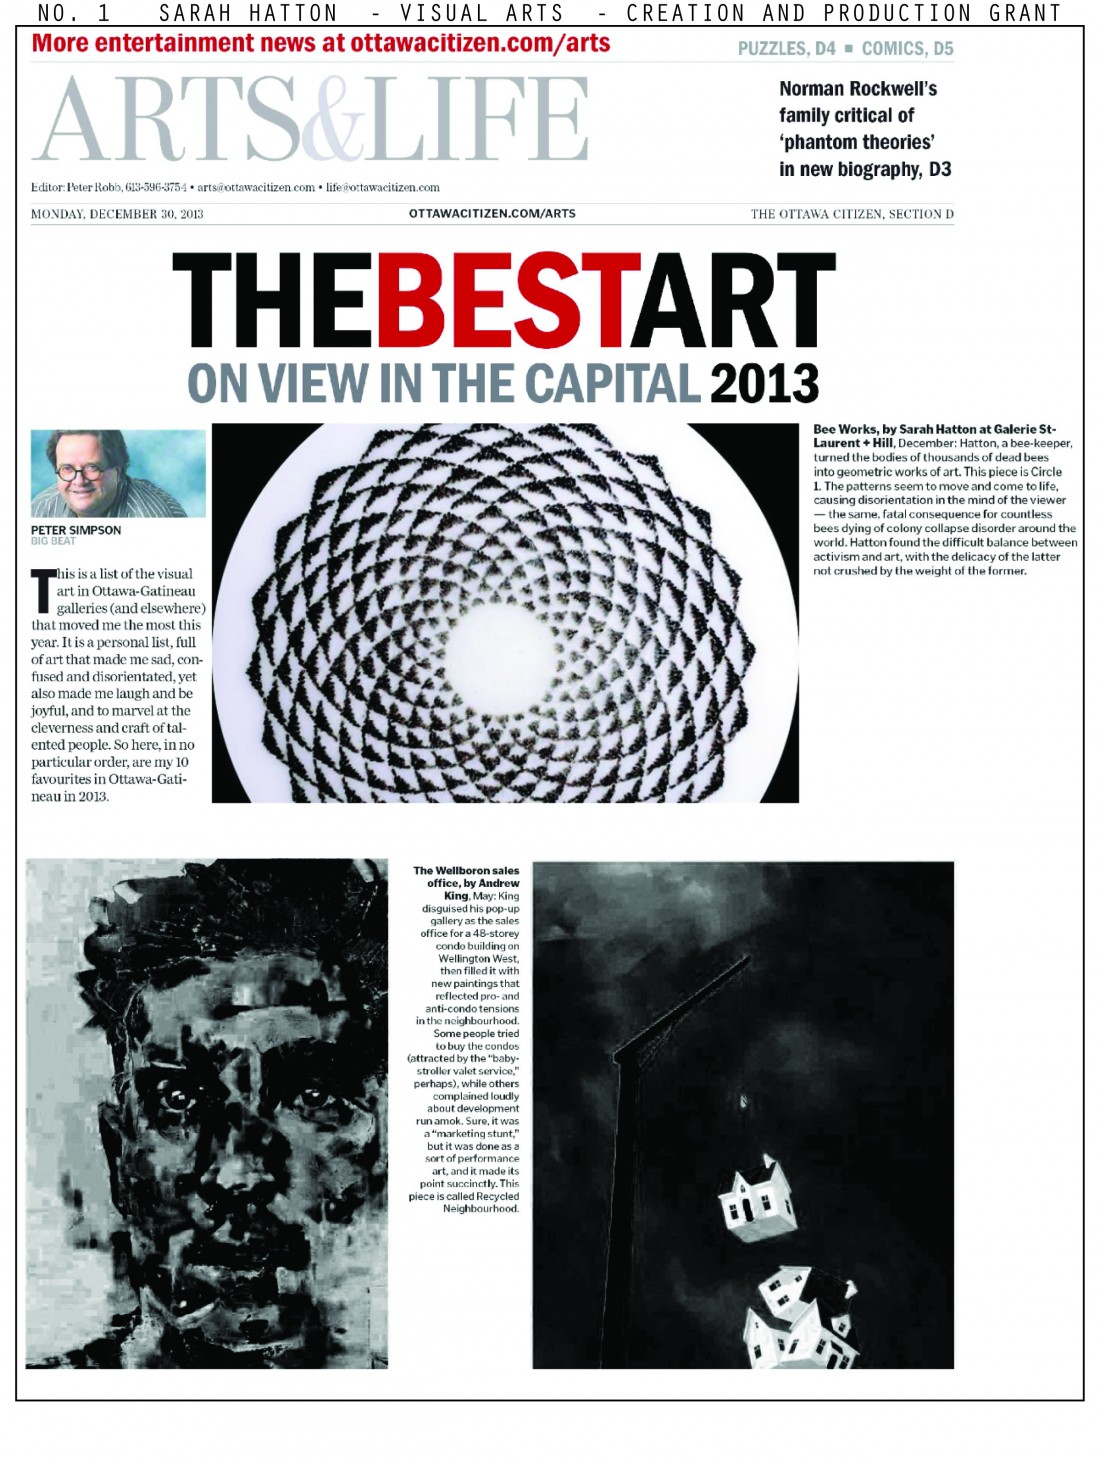 "13/12/29 ""The best art on view in the capital in 2013"". Peter Simpson. The Ottawa Citizen Arts. D2-D3"